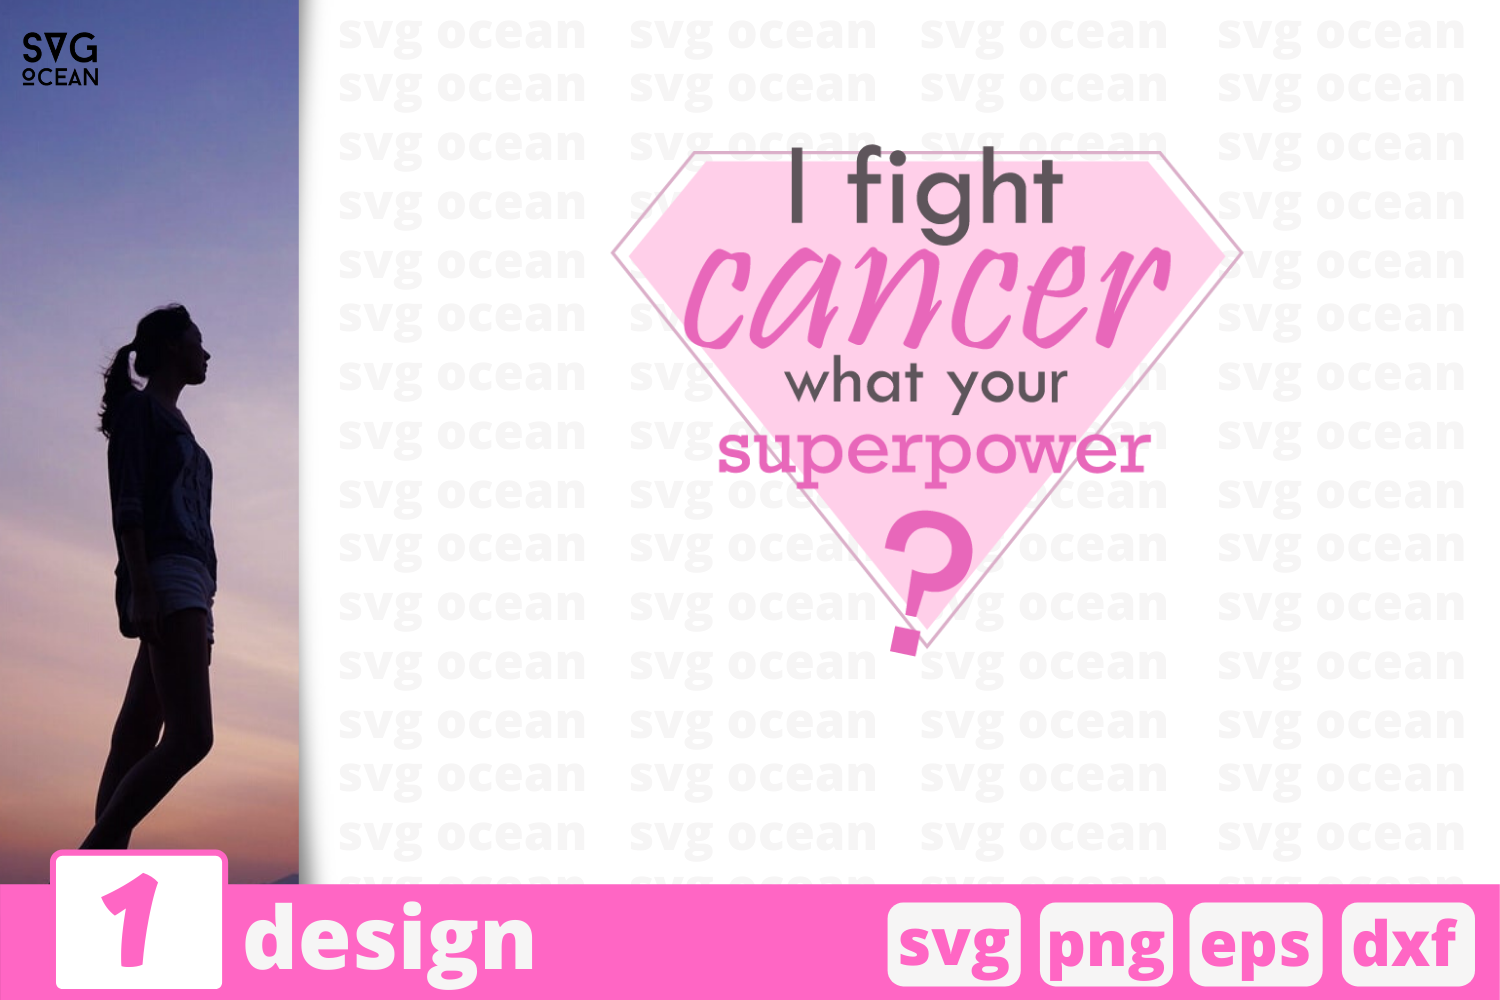 Download Free Fight Cancer Quote Graphic By Svgocean Creative Fabrica for Cricut Explore, Silhouette and other cutting machines.